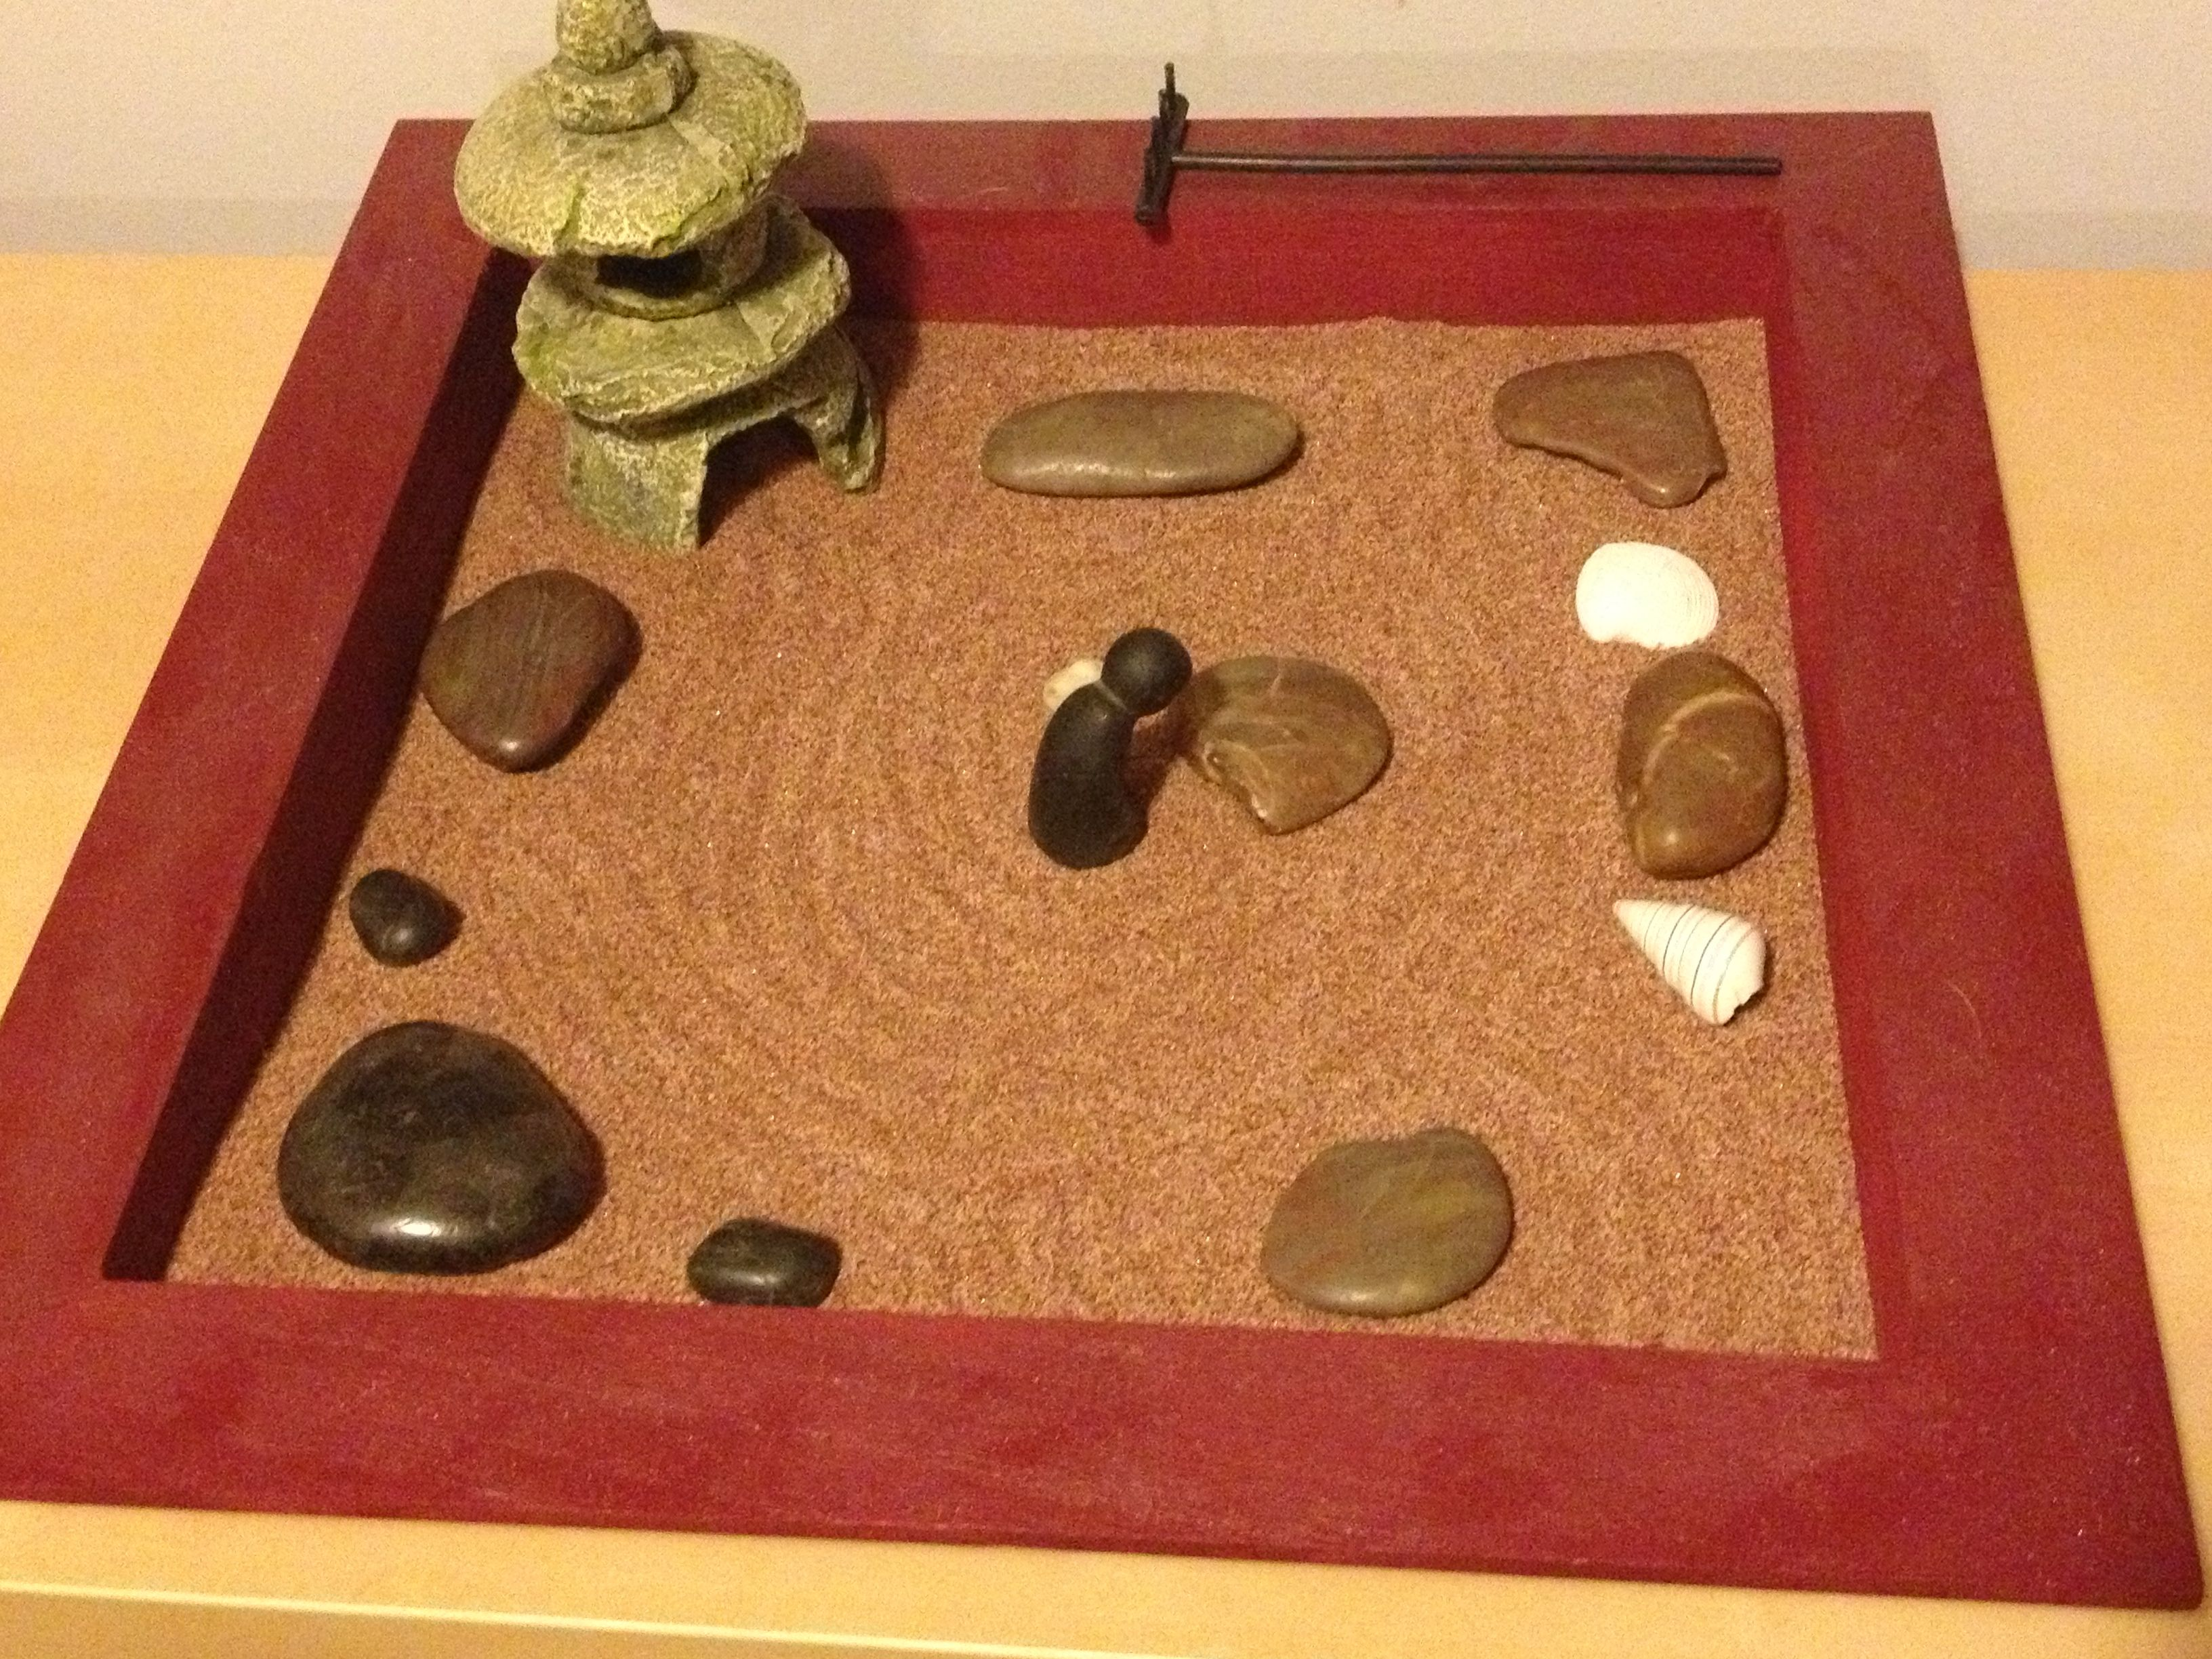 Mini #zen #garden. Supplies: From Michaelu0027s   Shadow Box, Spray Paint,  Sand, Rocks; #pagoda From Pet Store, Aquarium Section. Rakes Are A Tough  Find.